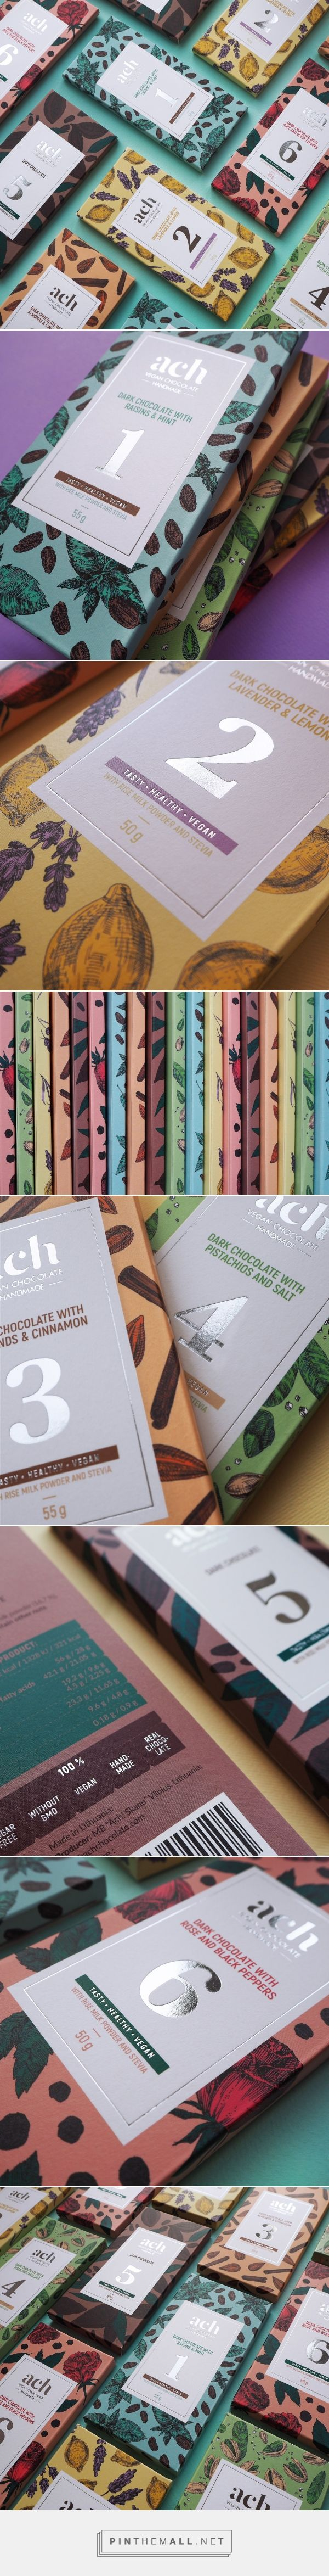 ACH Vegan Chocolate packaging design by Gintarė Marcinkevičienė - http://www.packagingoftheworld.com/2017/10/ach-vegan-chocolate.html